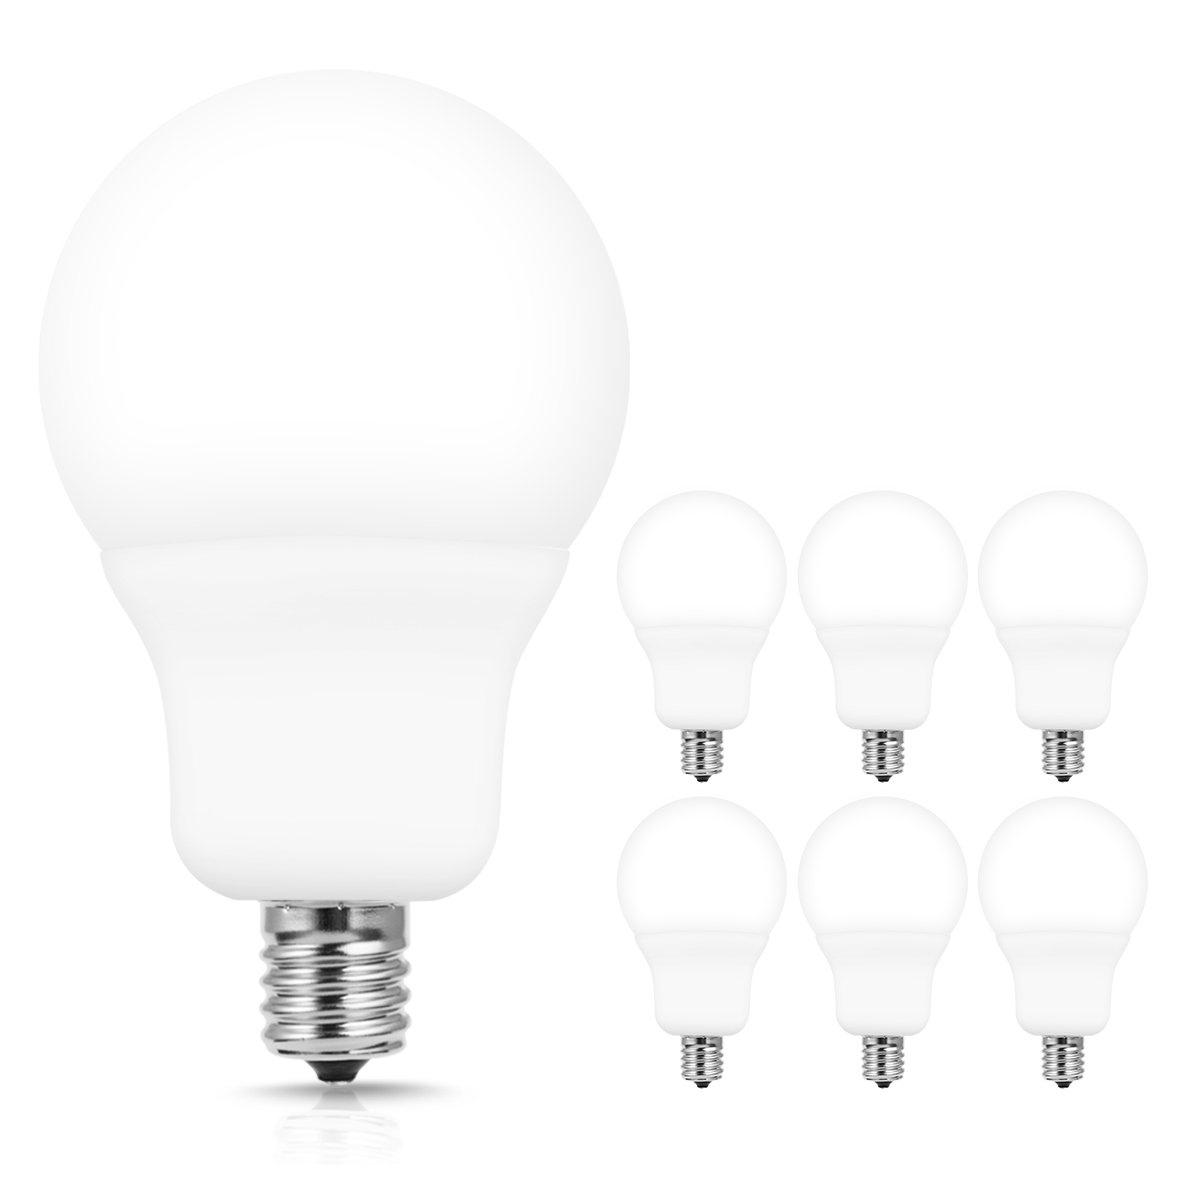 JandCase A19 Candelabra LED Light Bulbs, E17 Intermediate Base, 7W(60W Incandescent Equivalent), 700 LM, Natural Daylight White 4000K LED Bulb for Ceiling Fan, Hom Lighting, Not Dimmable, 6 Pack